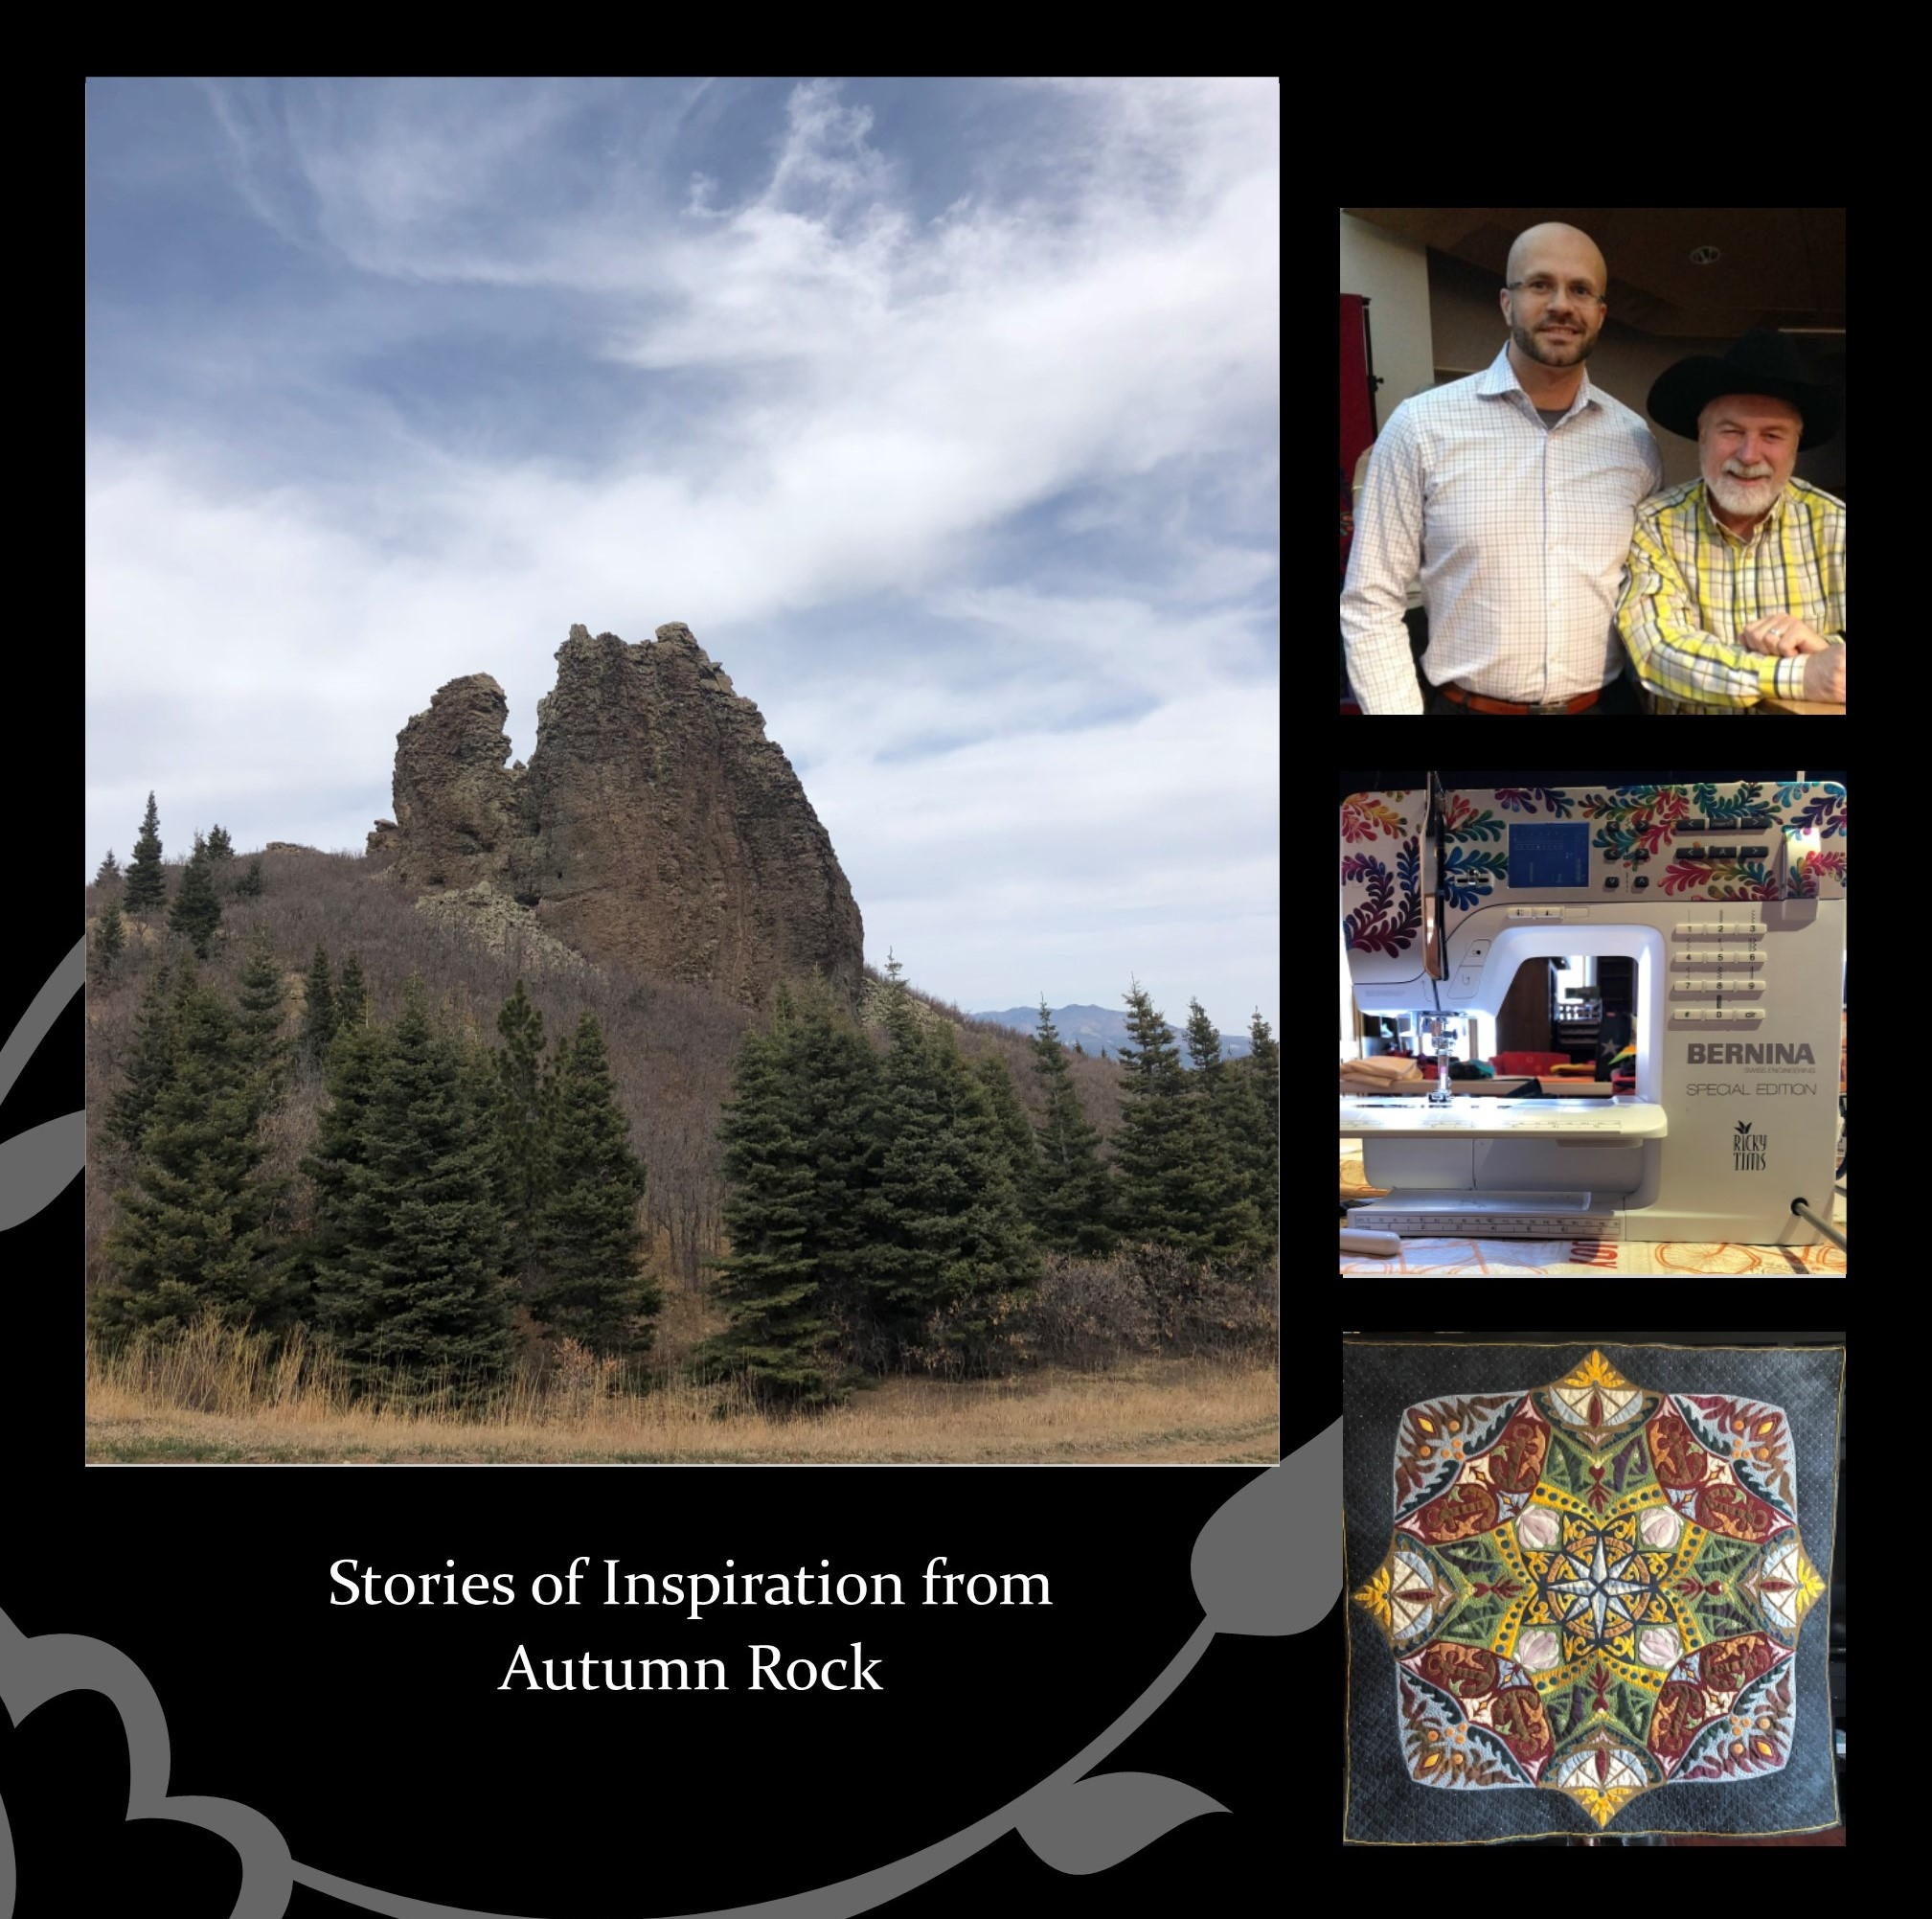 LCR.2011am - Stories of Inspiration at Autumn Rock - DAYTIME LECTURE